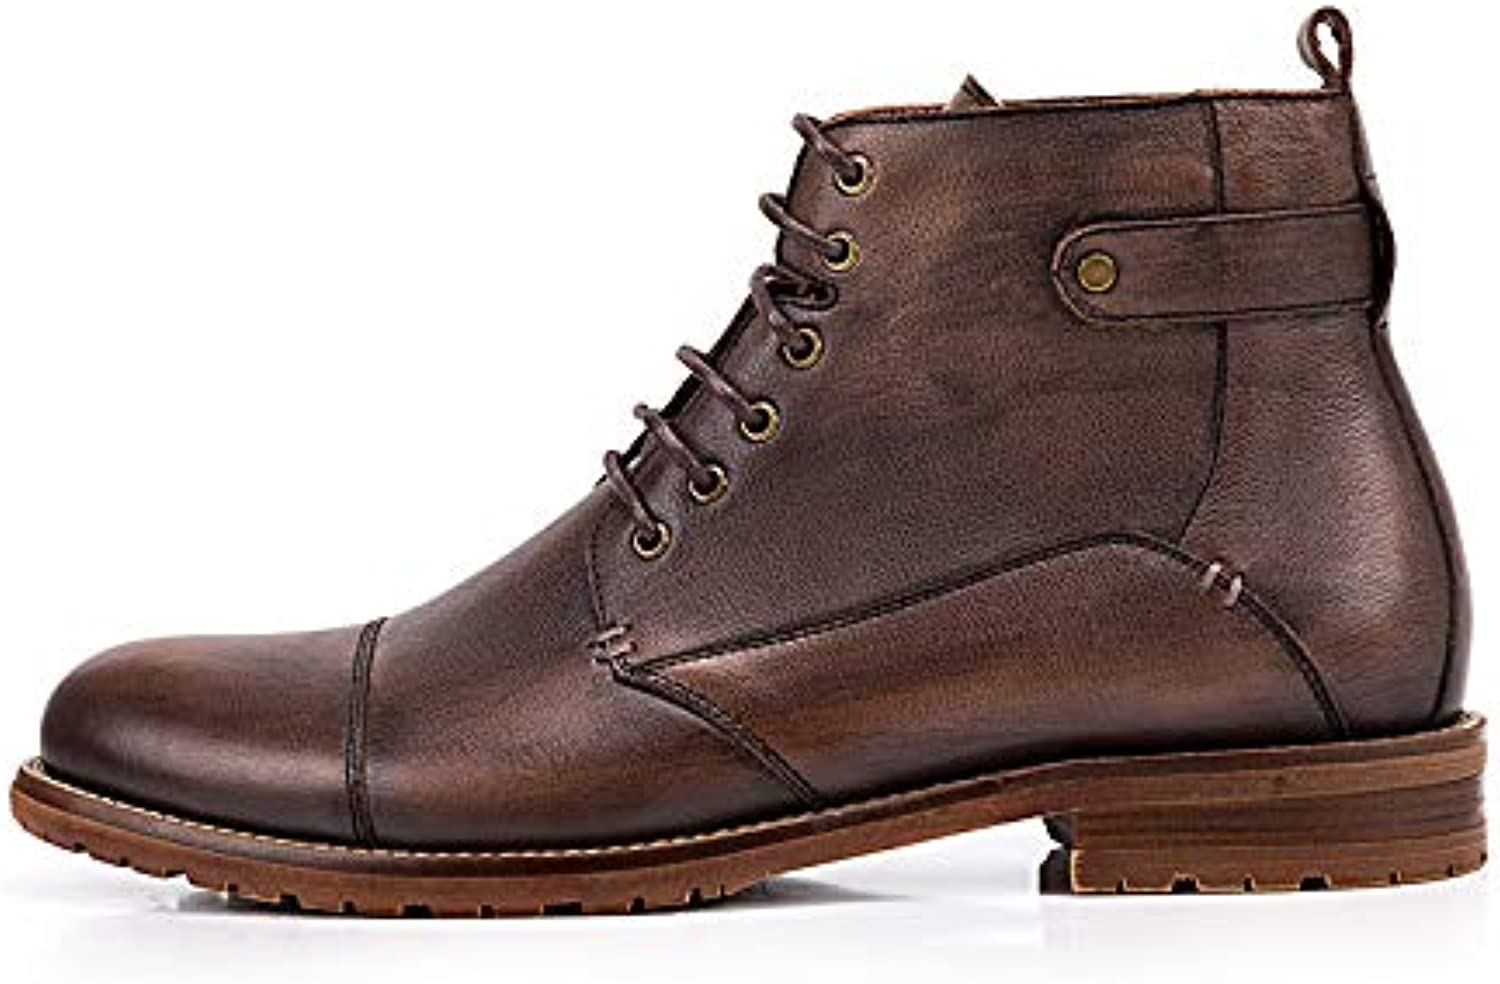 ZHRUI Lace up Chukka Boots for Men Soft Sole Sole Sole Durable Comfort Genuine Leather Boots (färg  svart, Storlek  UK 5.5)  100% fri frakt